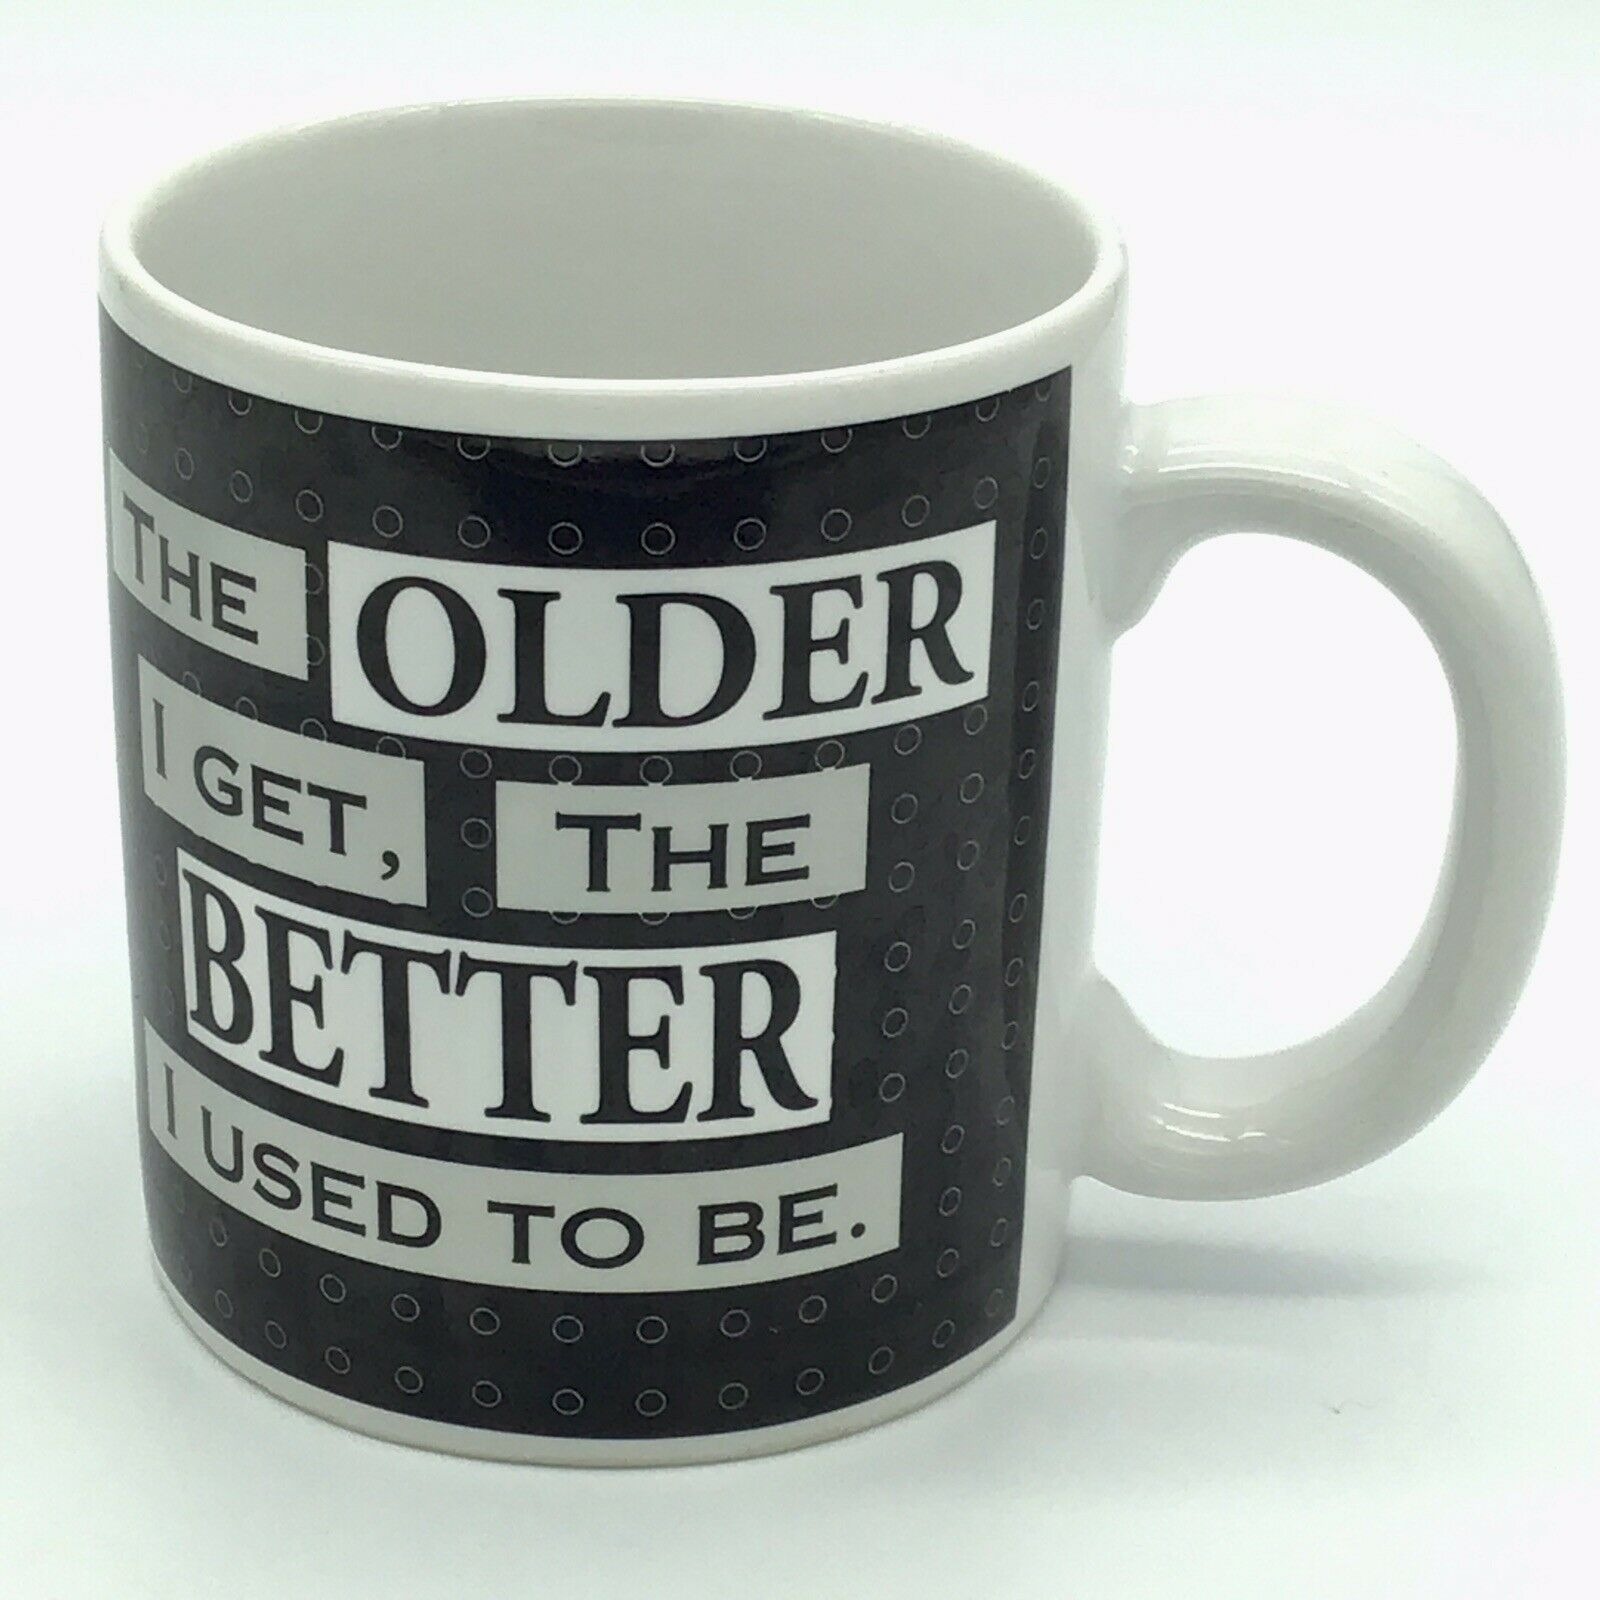 Primary image for Russ Berrie Coffee Mug The Older I Get The Better I Used To Be Birthday Humor